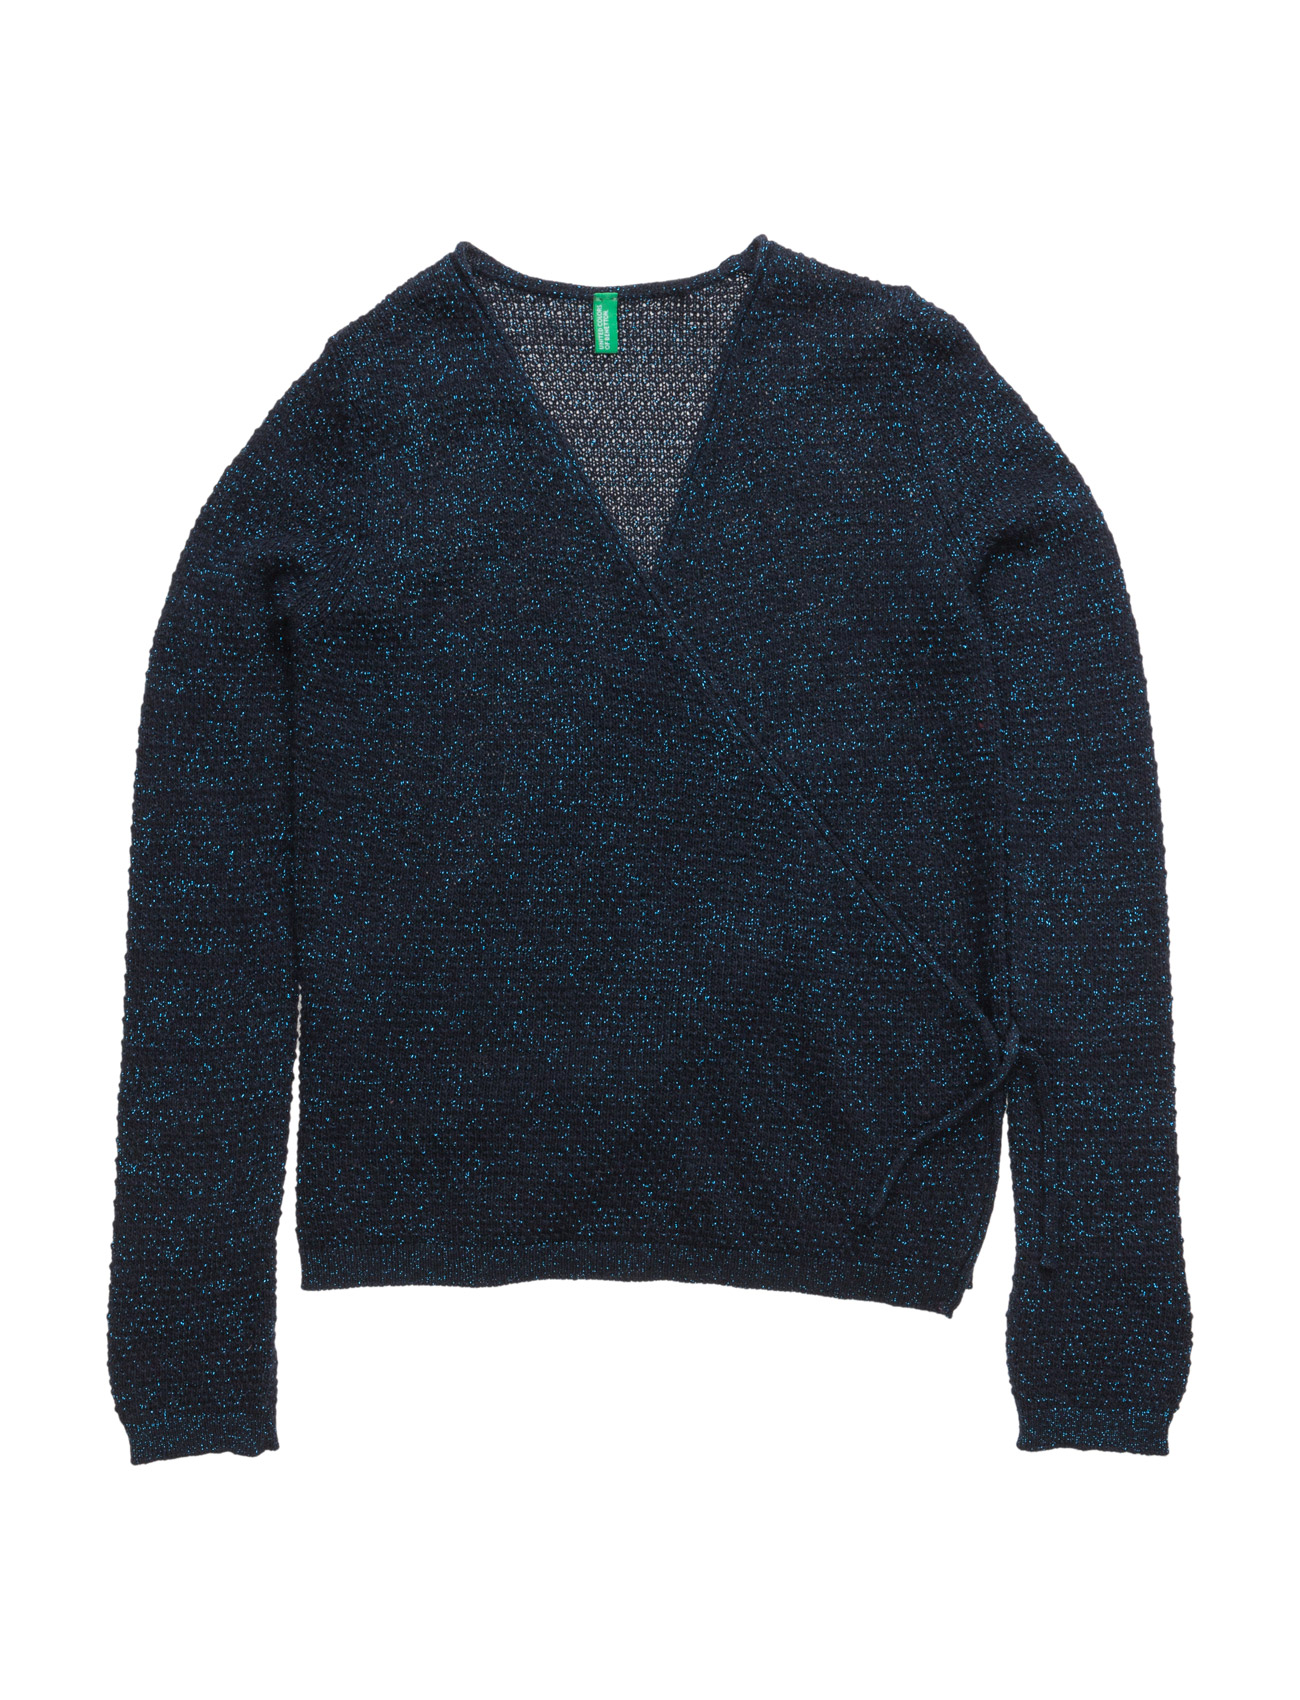 L/S Cardigan United Colors of Benetton  til Børn i